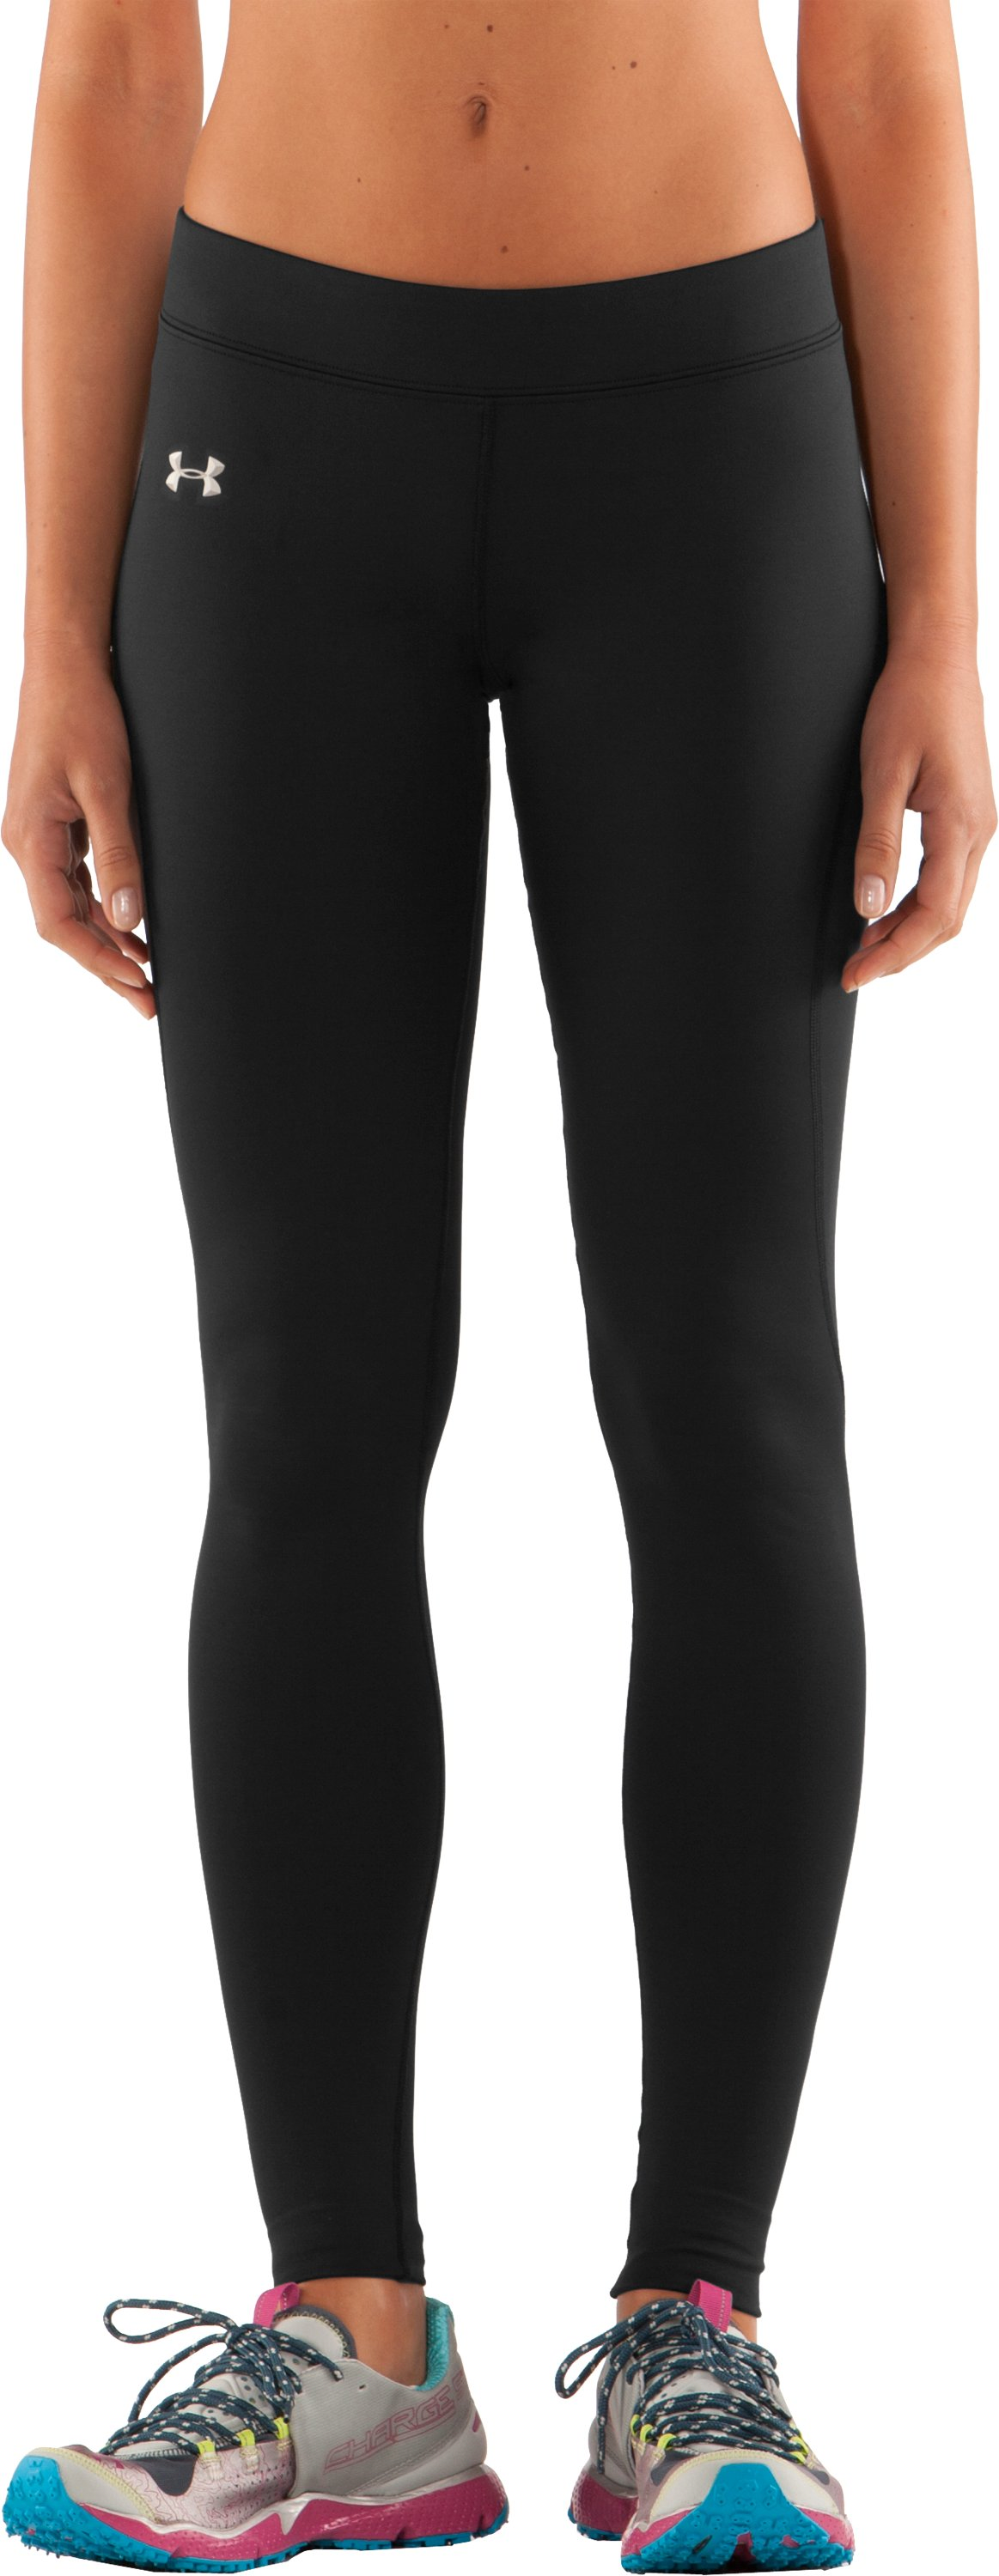 Women's ColdGear® Fitted Leggings, Black , zoomed image